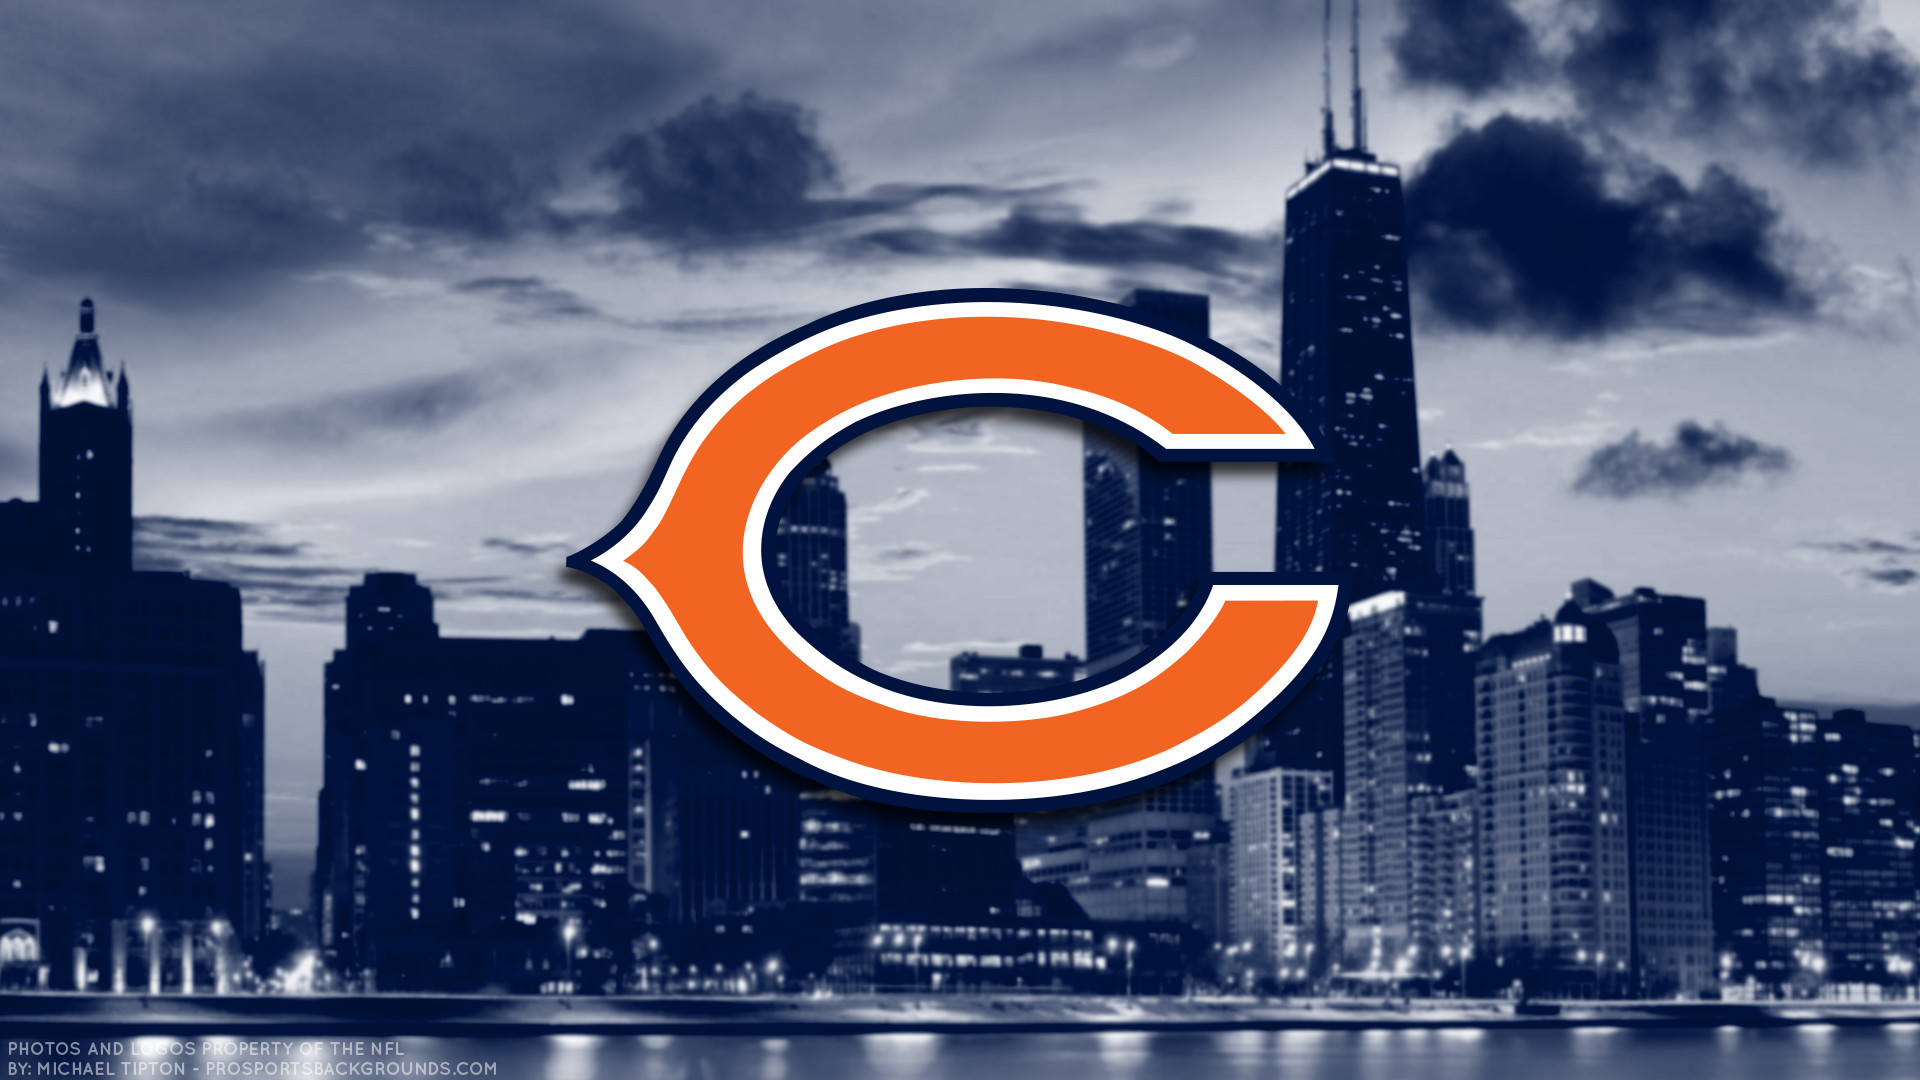 Chicago Bears wallpapers and Pictures download free   HD Wallpapers    Pinterest   Hd wallpaper and Wallpaper